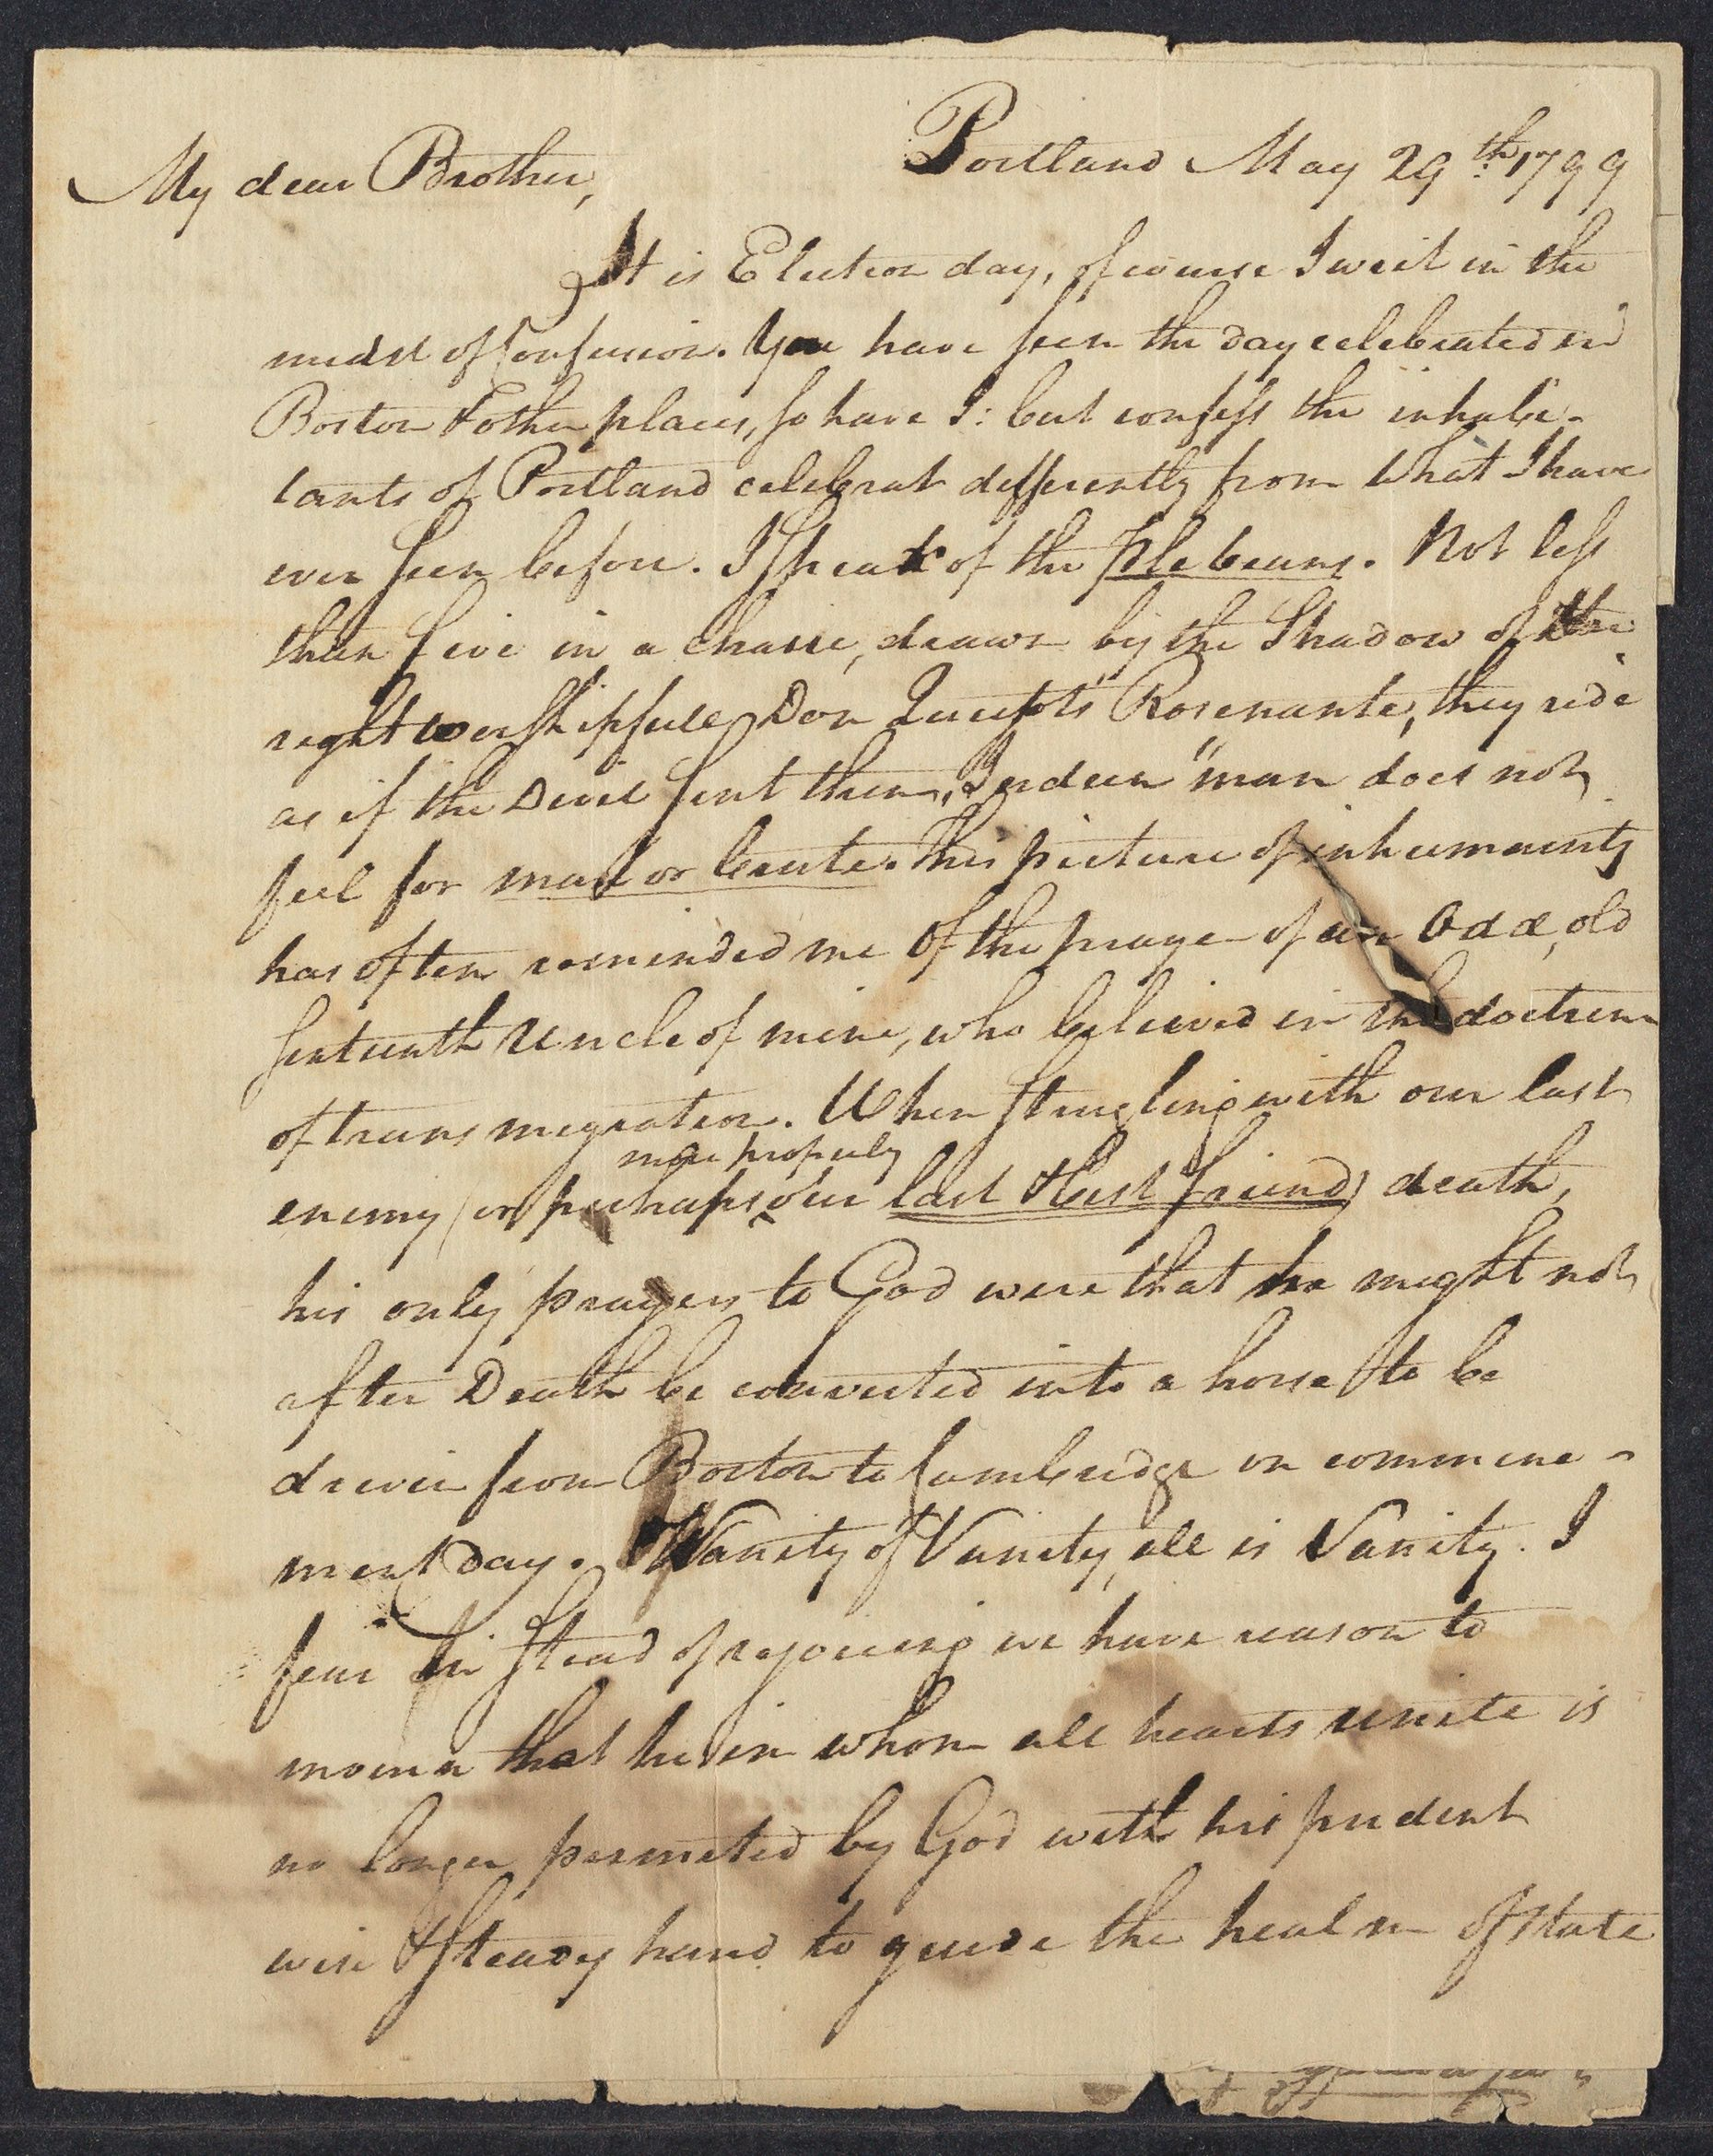 Letter from Stephen Longfellow to Daniel Appleton White, 1799 May 29